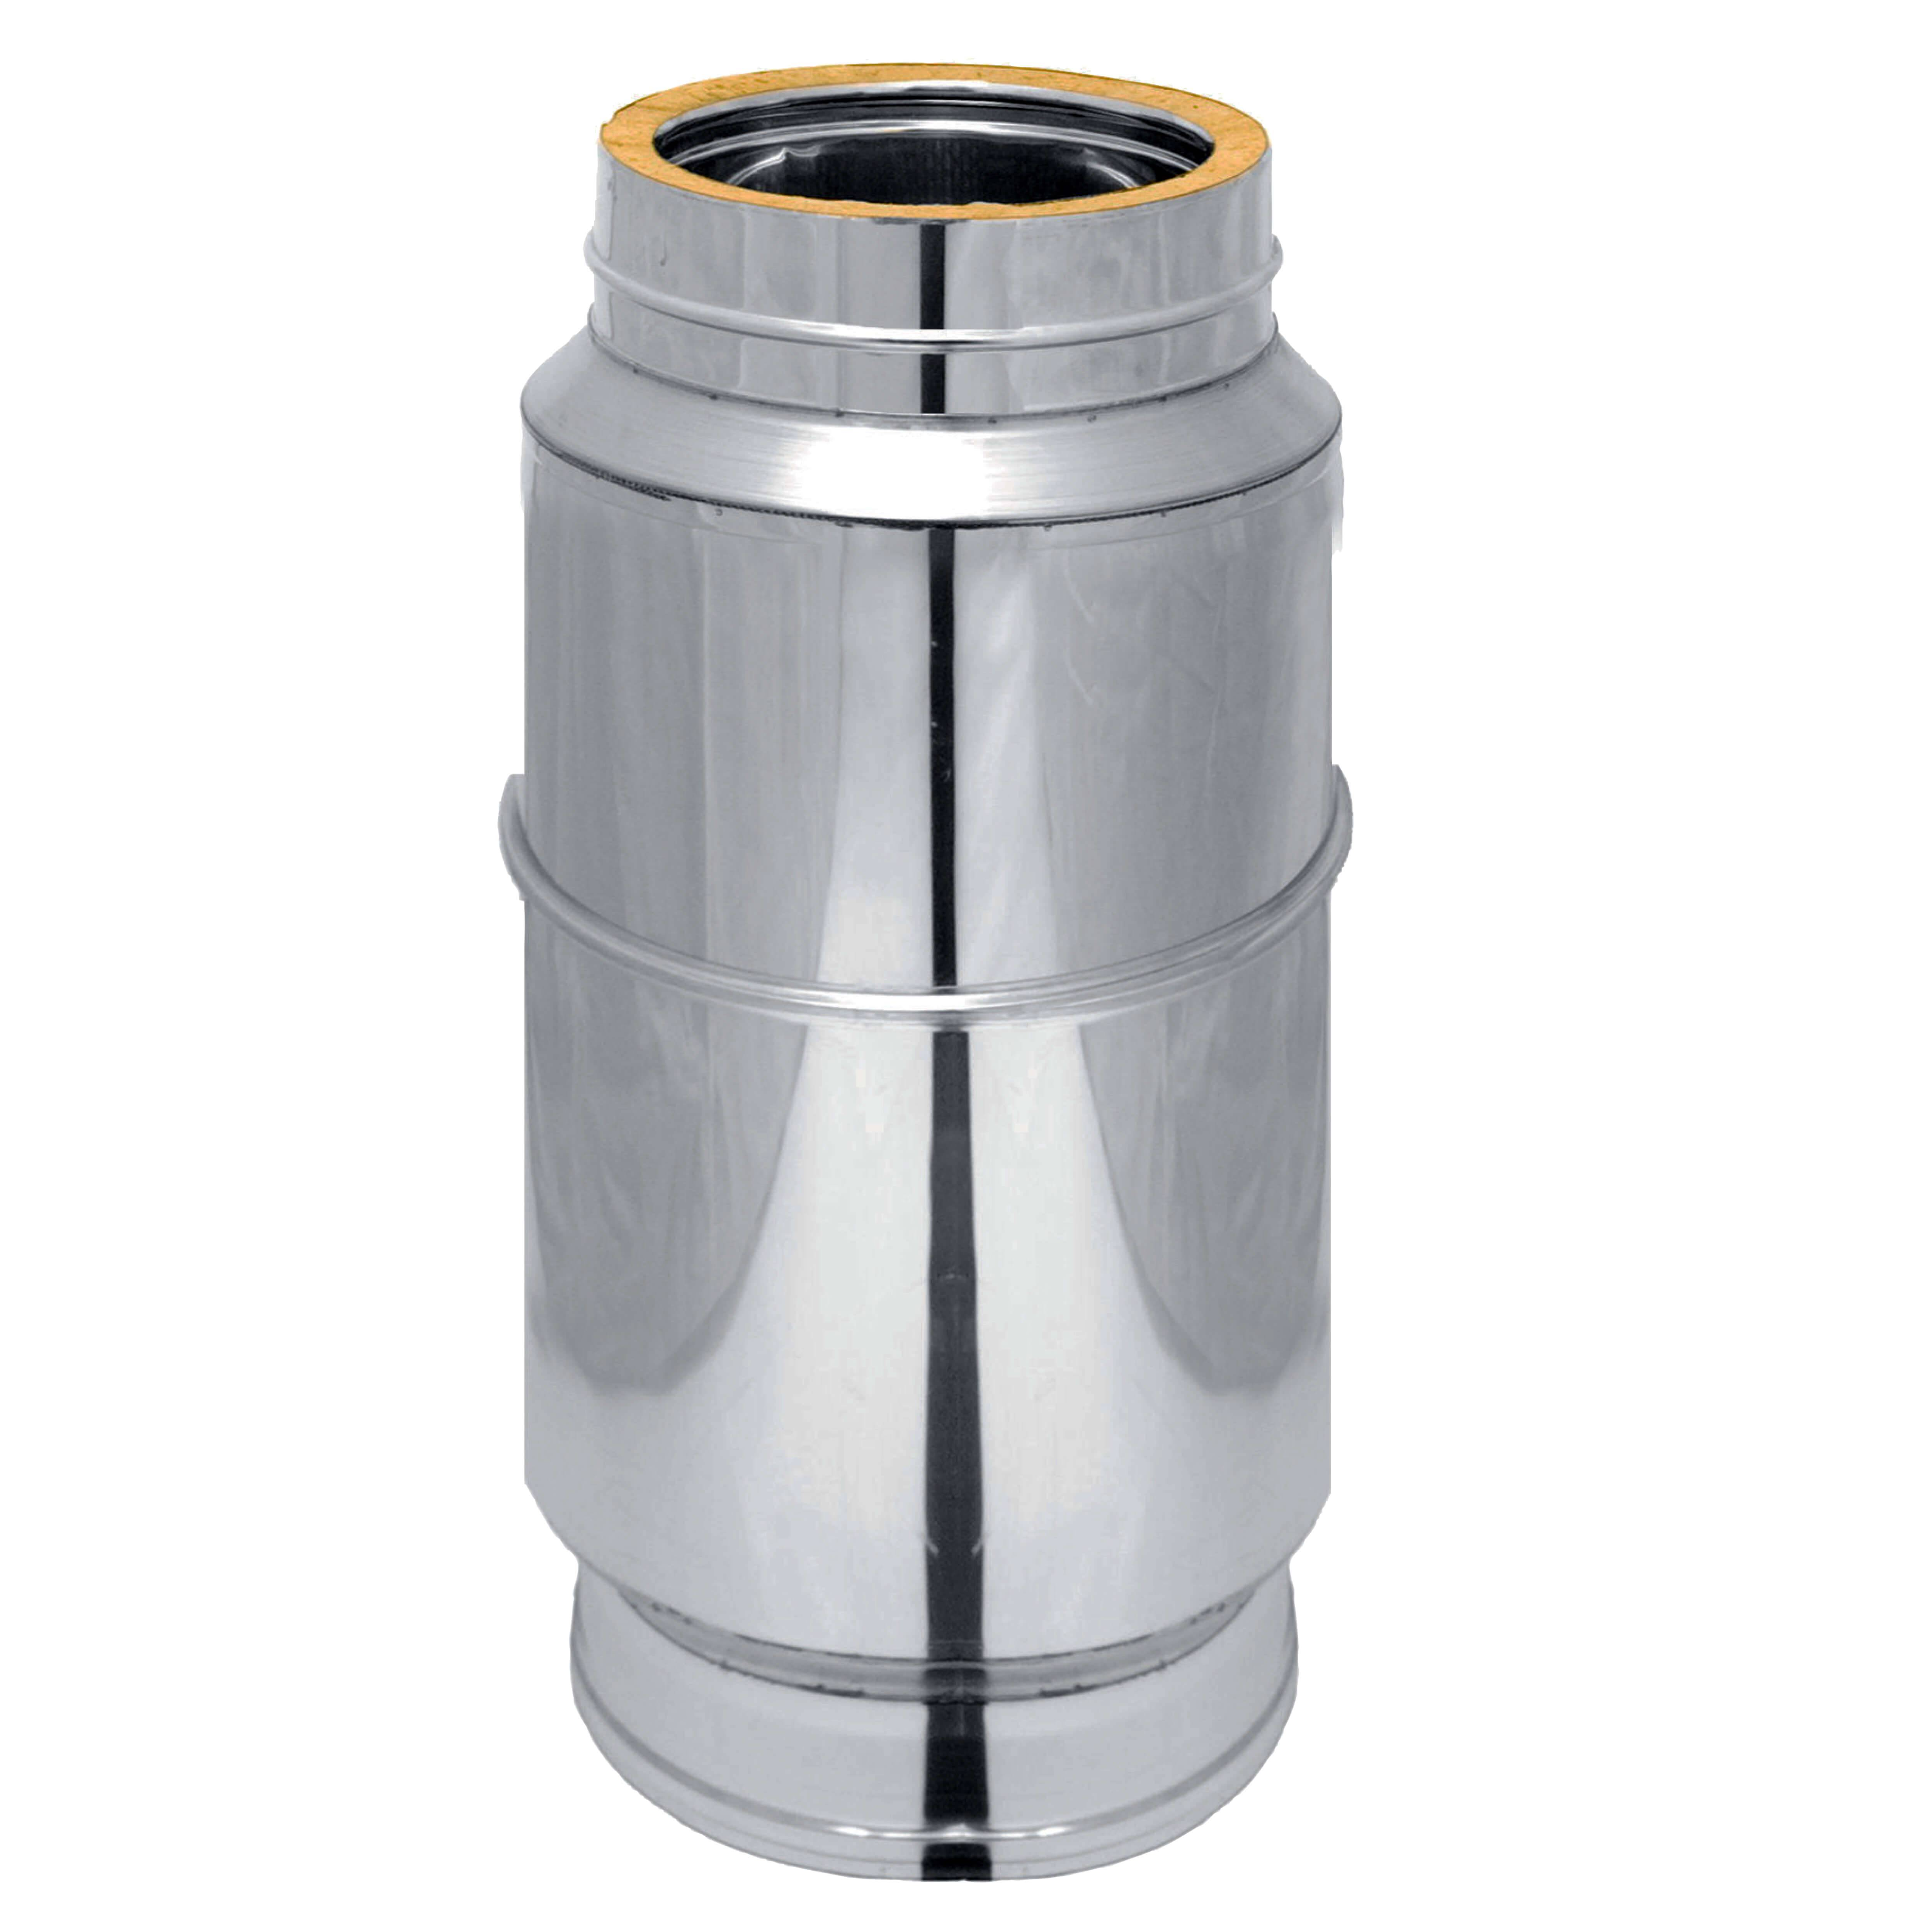 Absorption silencers, absorbing materials disposed within a hollow cylinder.